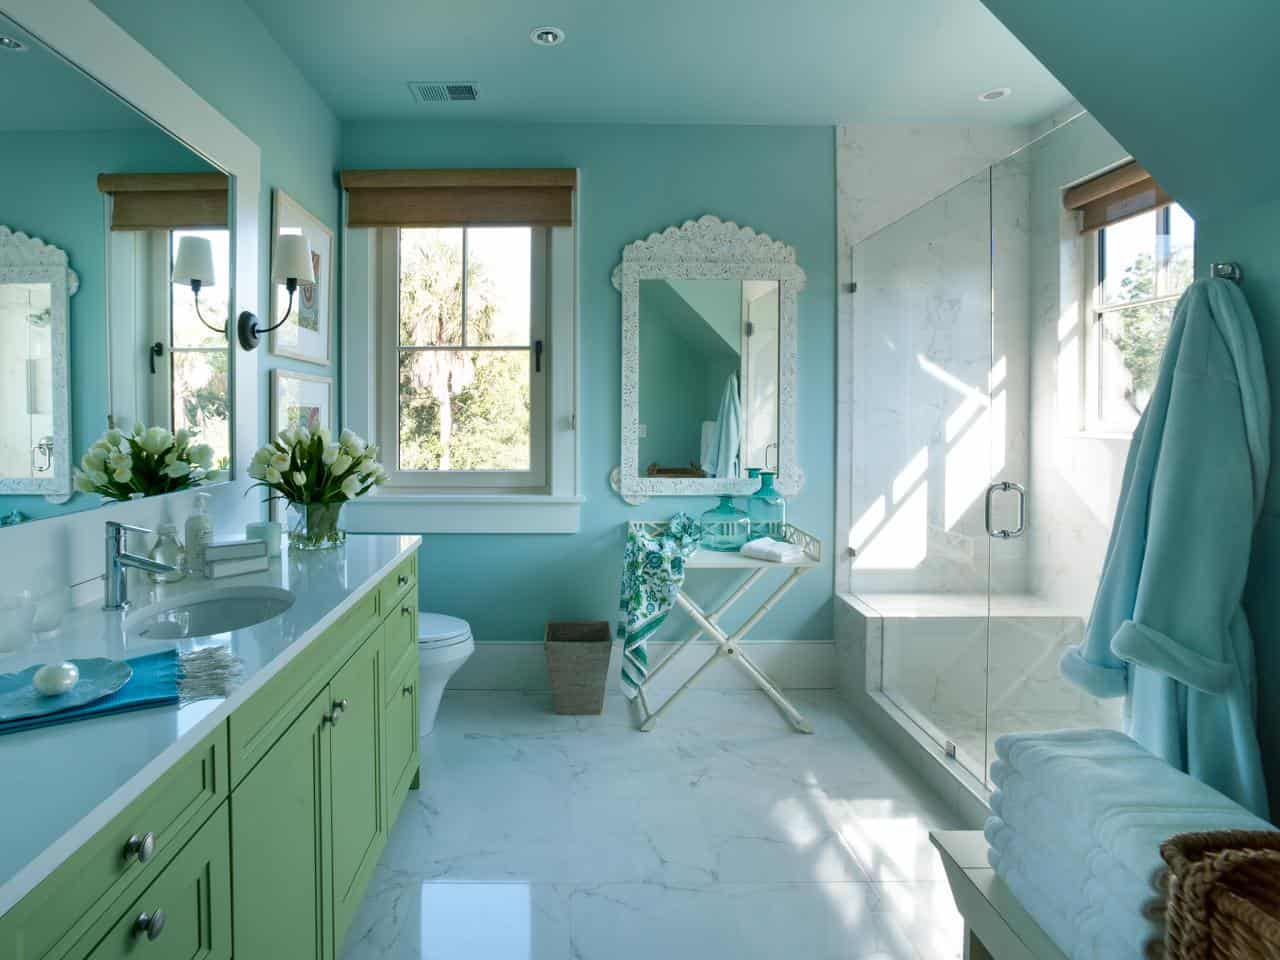 Working with a shade like bluish green is great when you want a metamorphic color